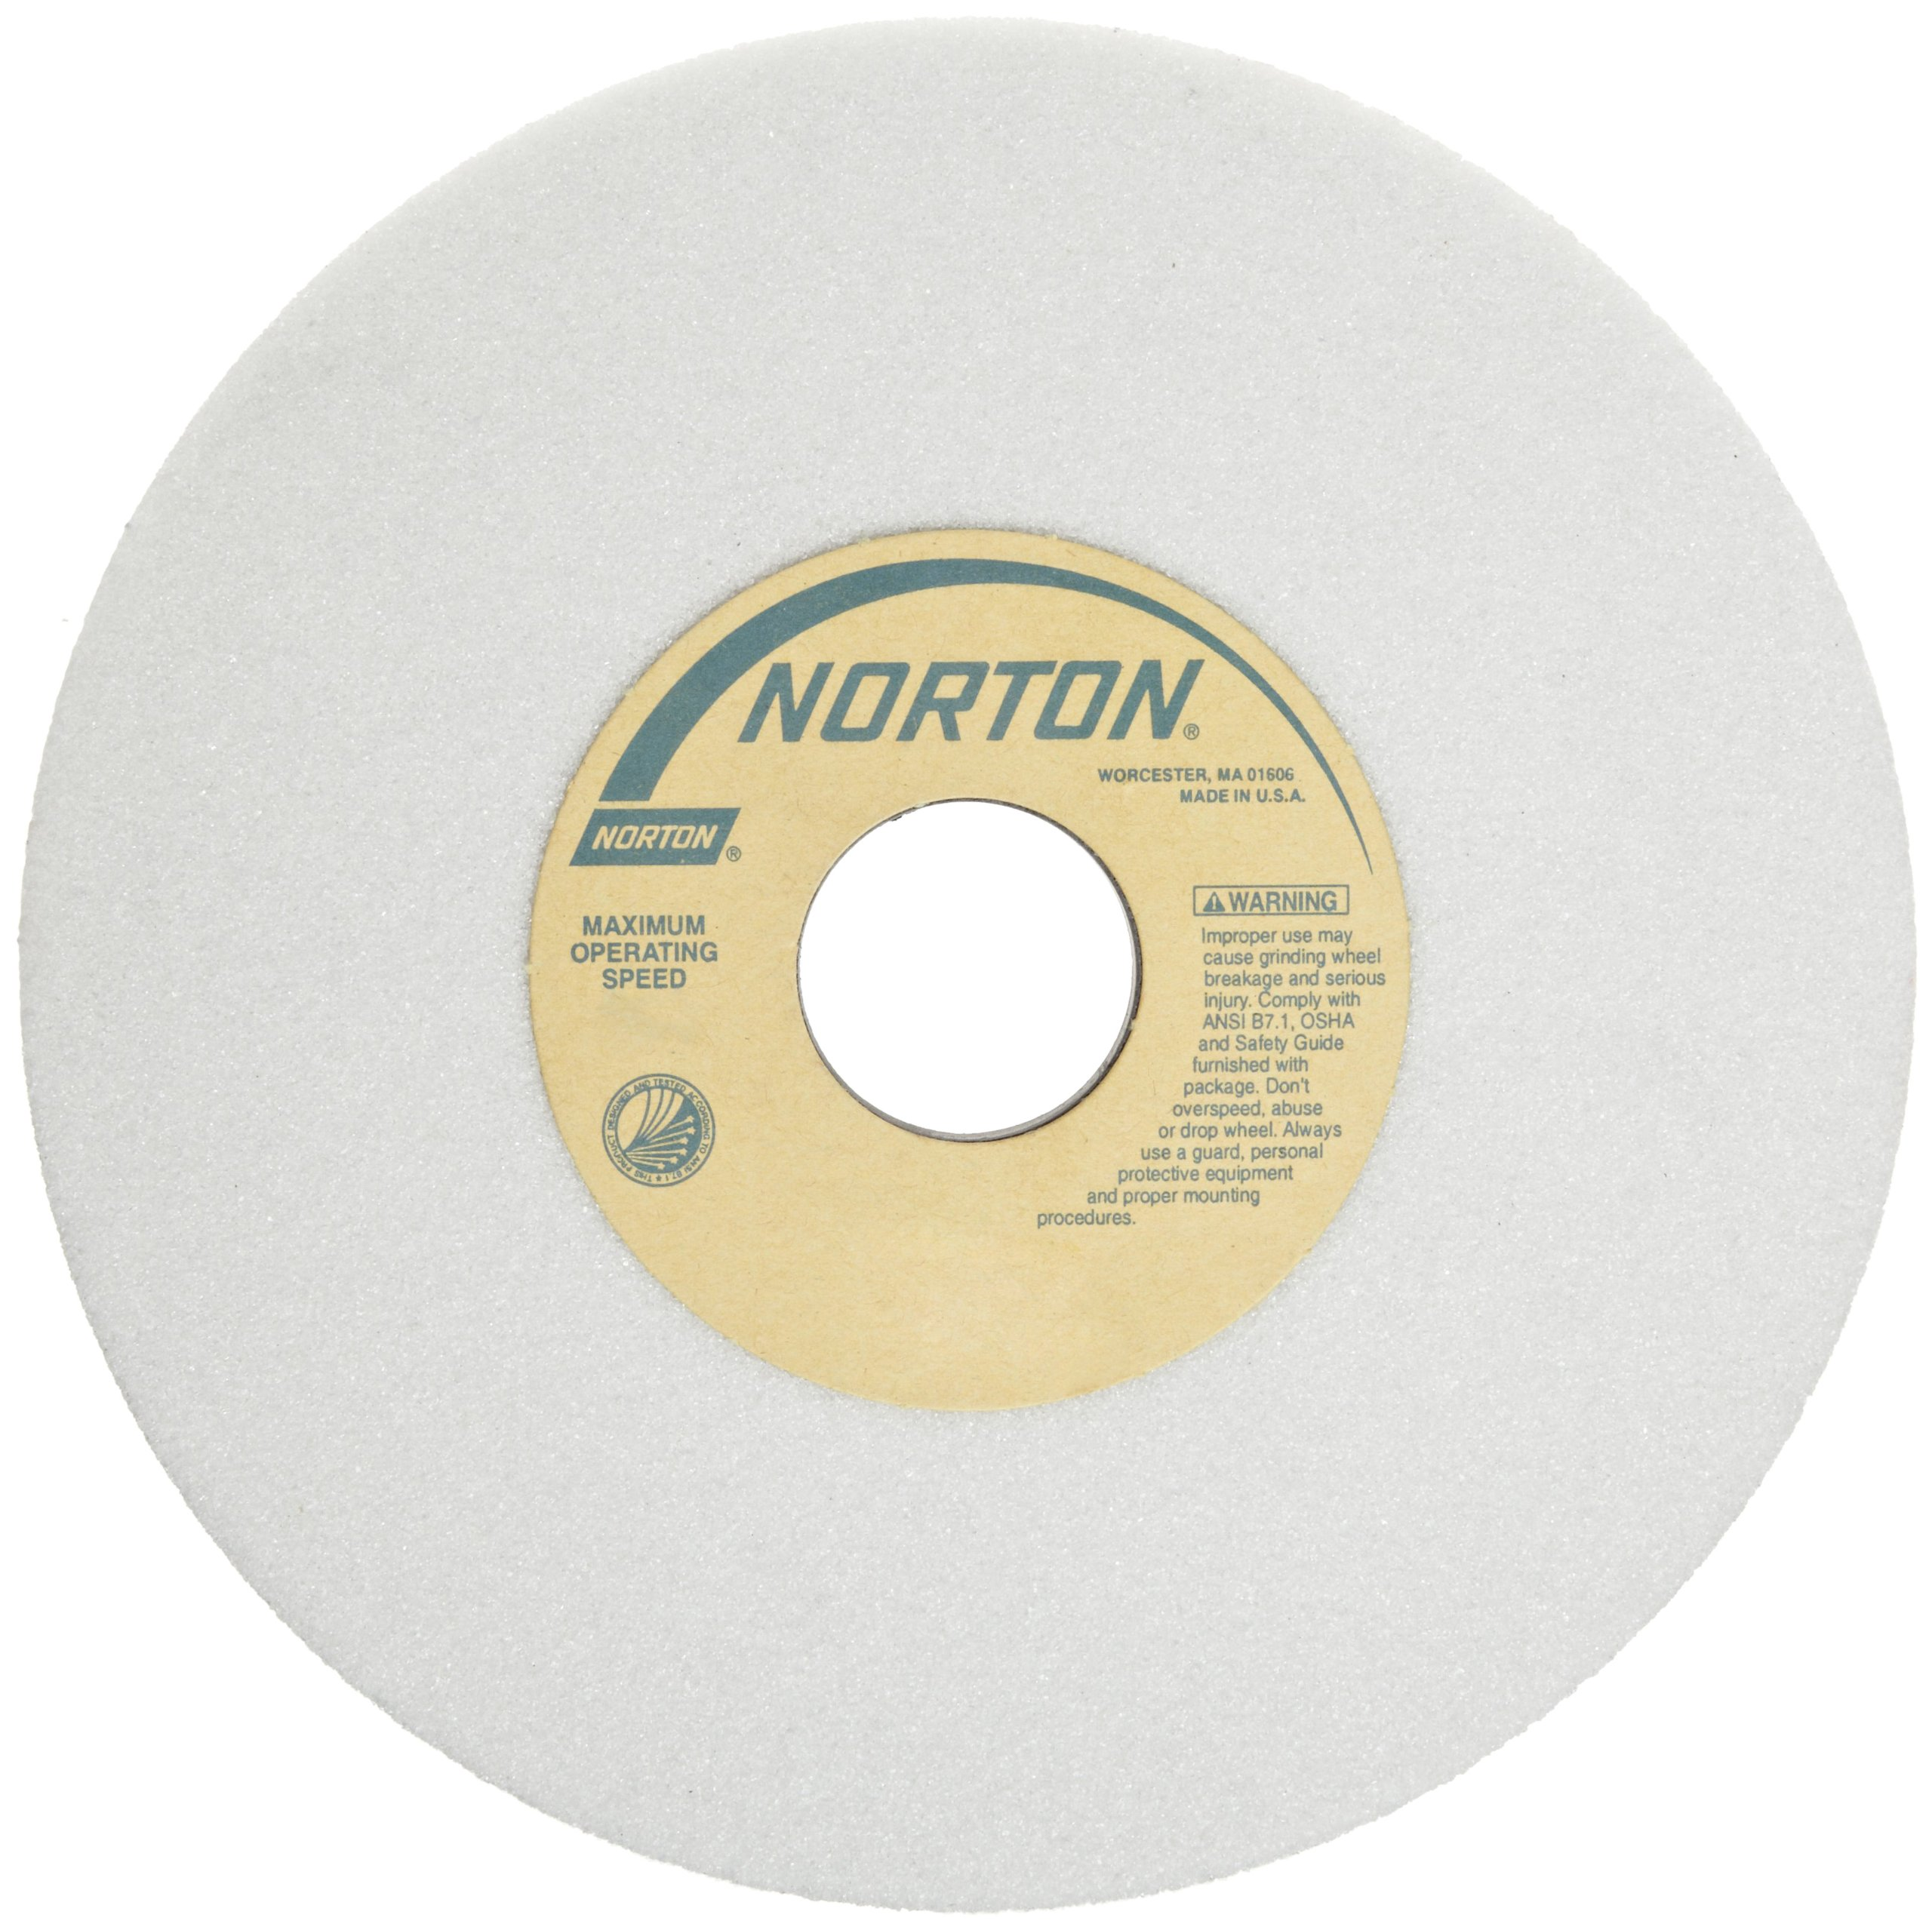 Norton 38A Vitrified Toolroom Abrasive Wheel, Type 01 Straight, Aluminum Oxide, 1-1/4'' Arbor, 7'' Diameter, 1/2'' Thickness, 46-H Grit (Pack of 10) by Norton Abrasives - St. Gobain